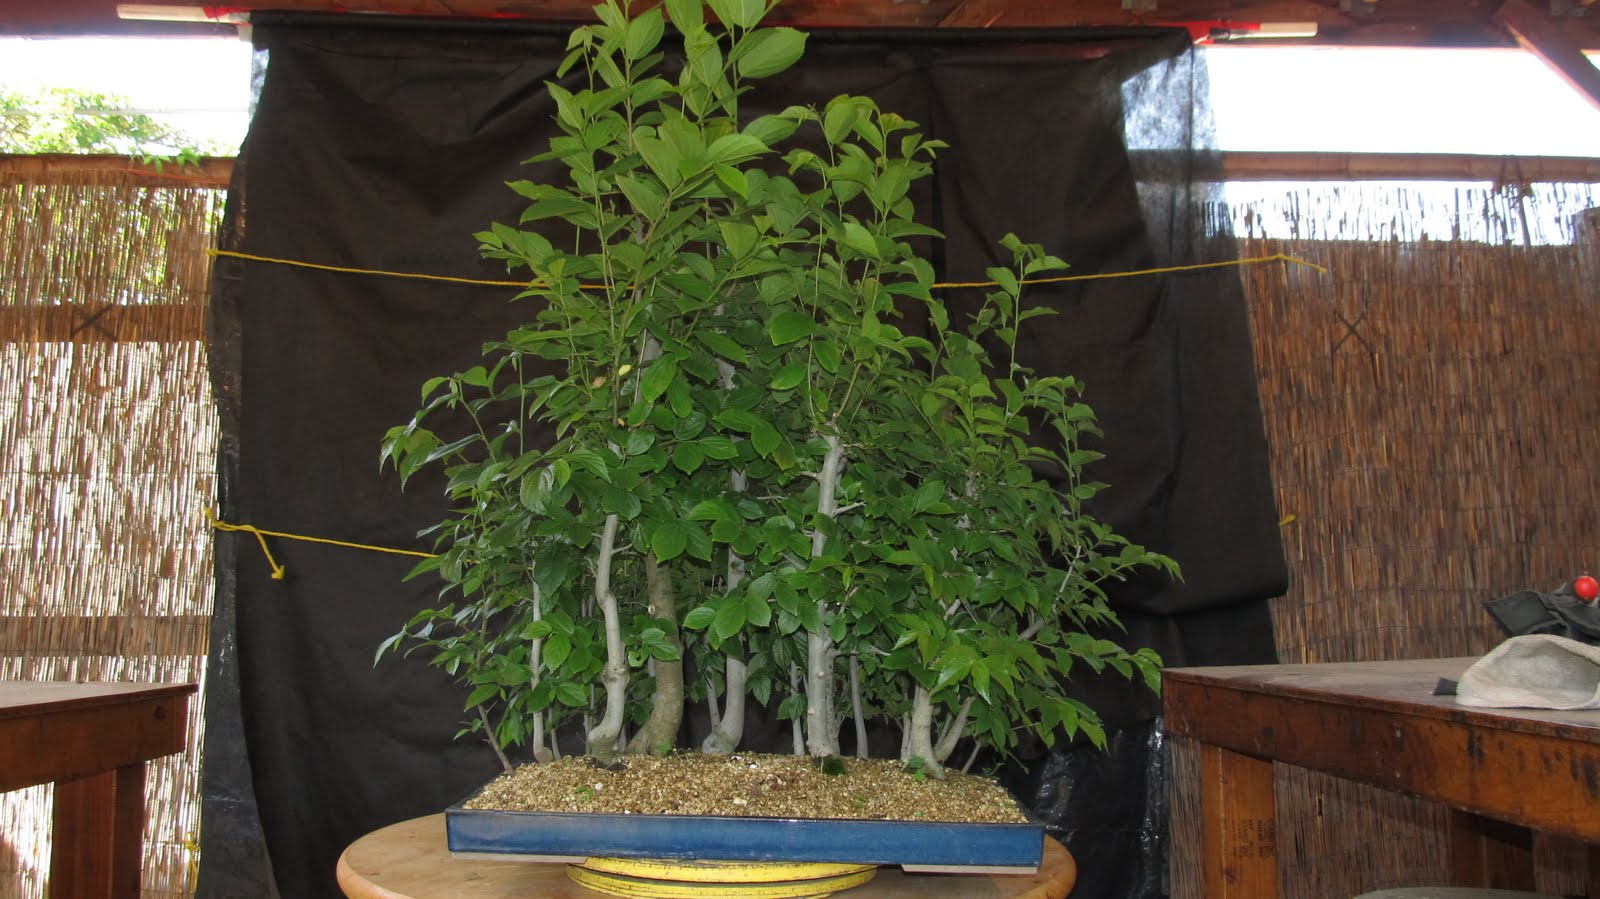 Bonsaibp39s Bonsai Blog Hackberry Forest Revisited